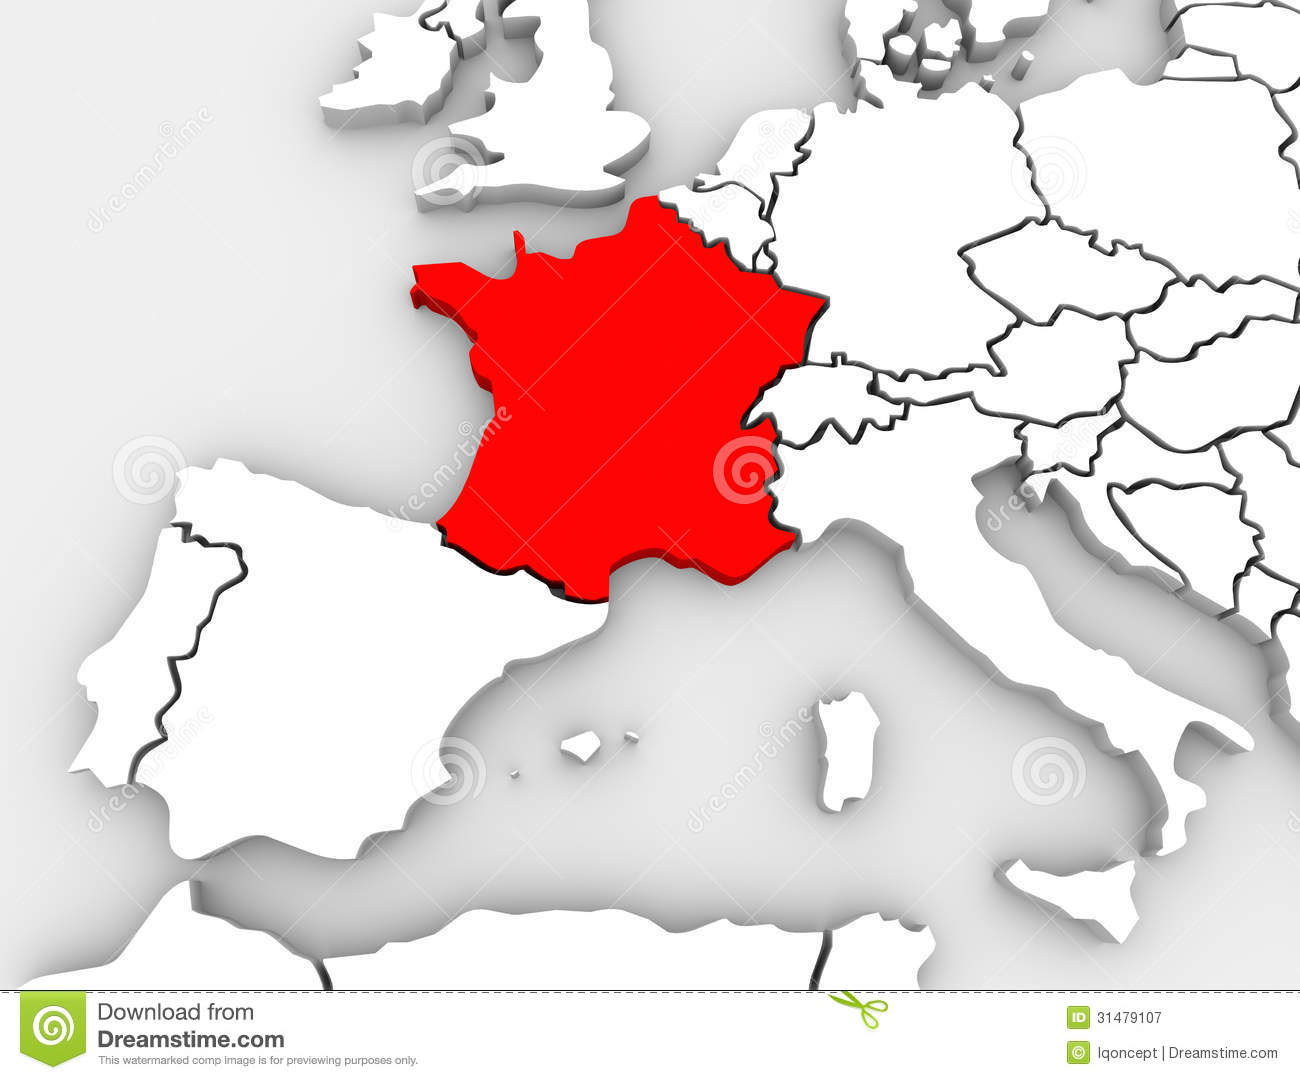 France abstract 3d map europe continent stock illustration france abstract 3d map europe continent gumiabroncs Gallery